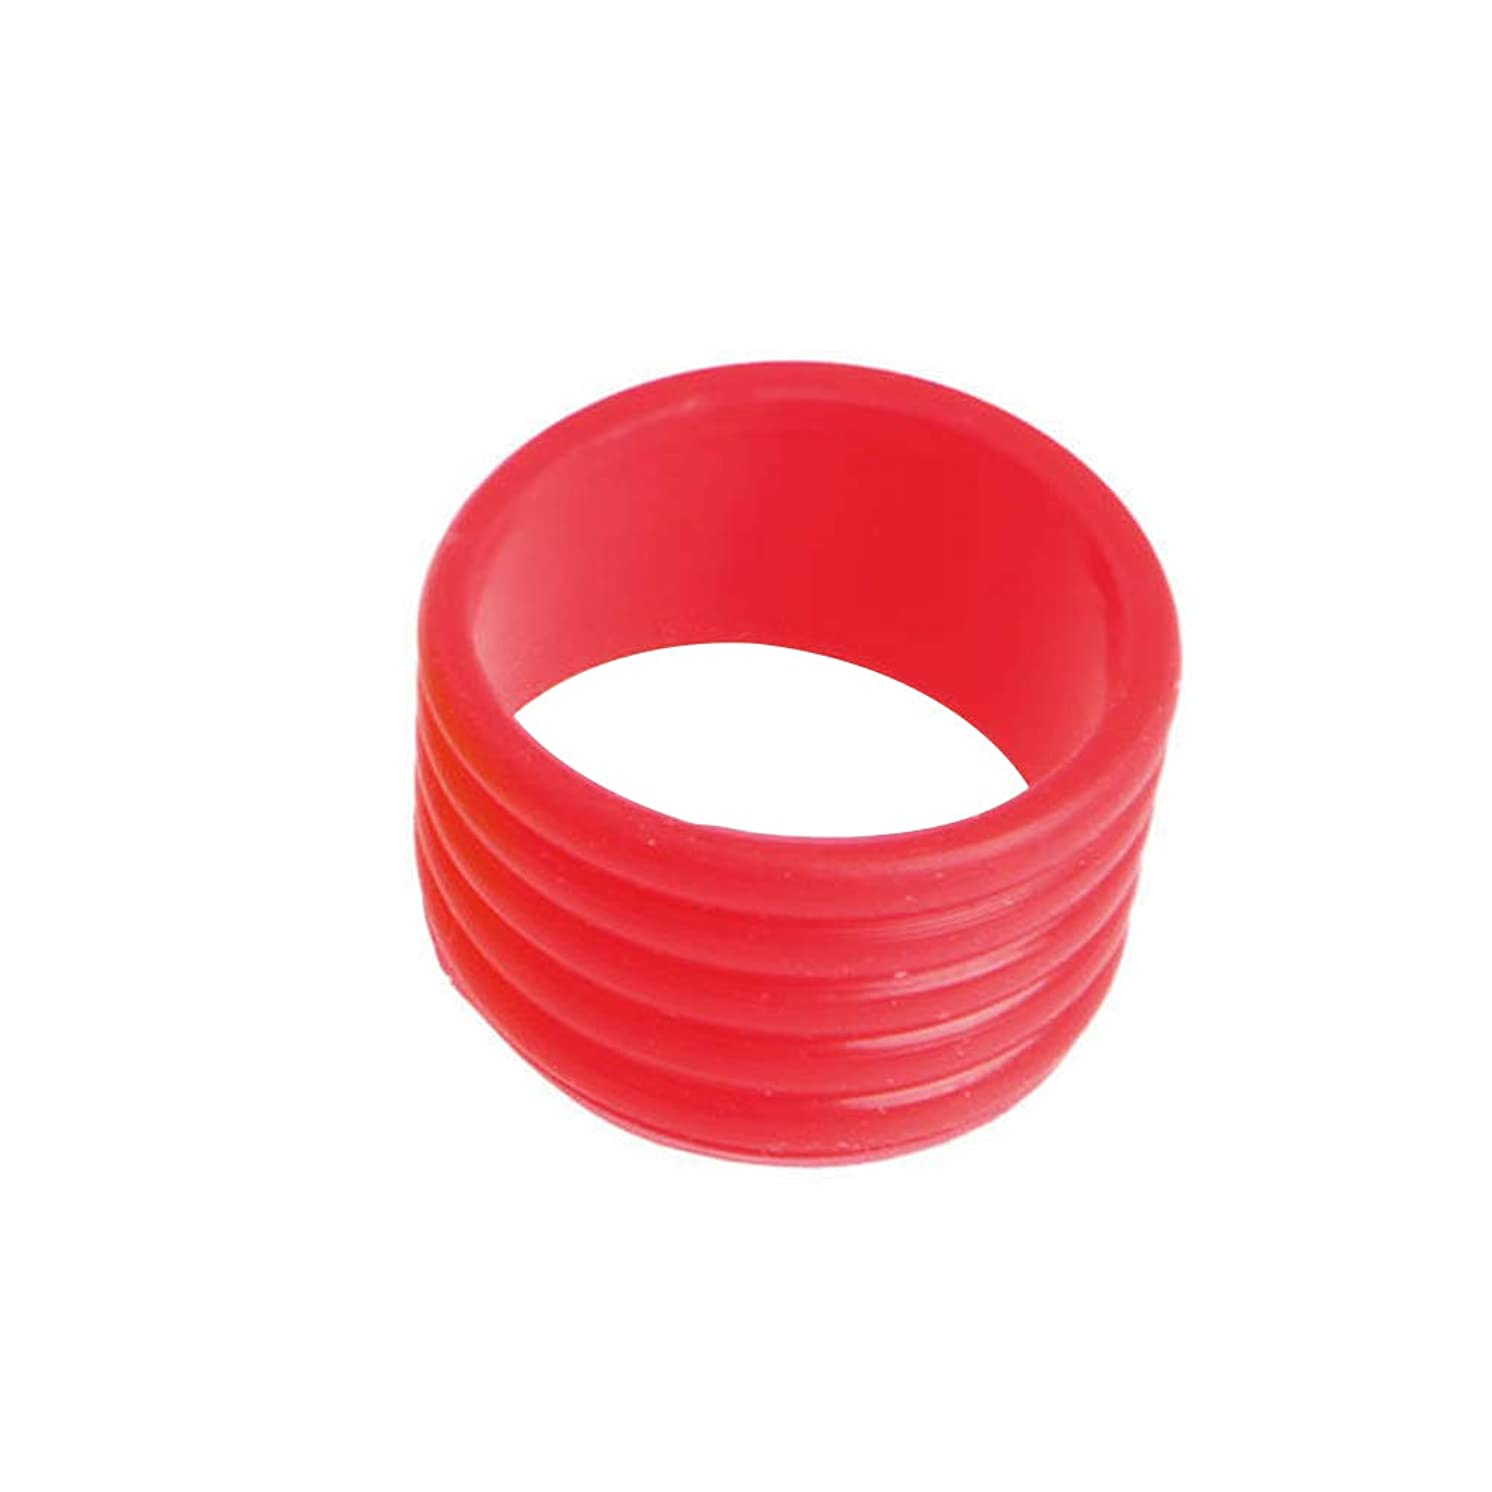 ruiycltd 5Pcs Sport Racket Handle Rubber Ring Stretchy Tennis Racquet Band Overgrips New Year's Gift